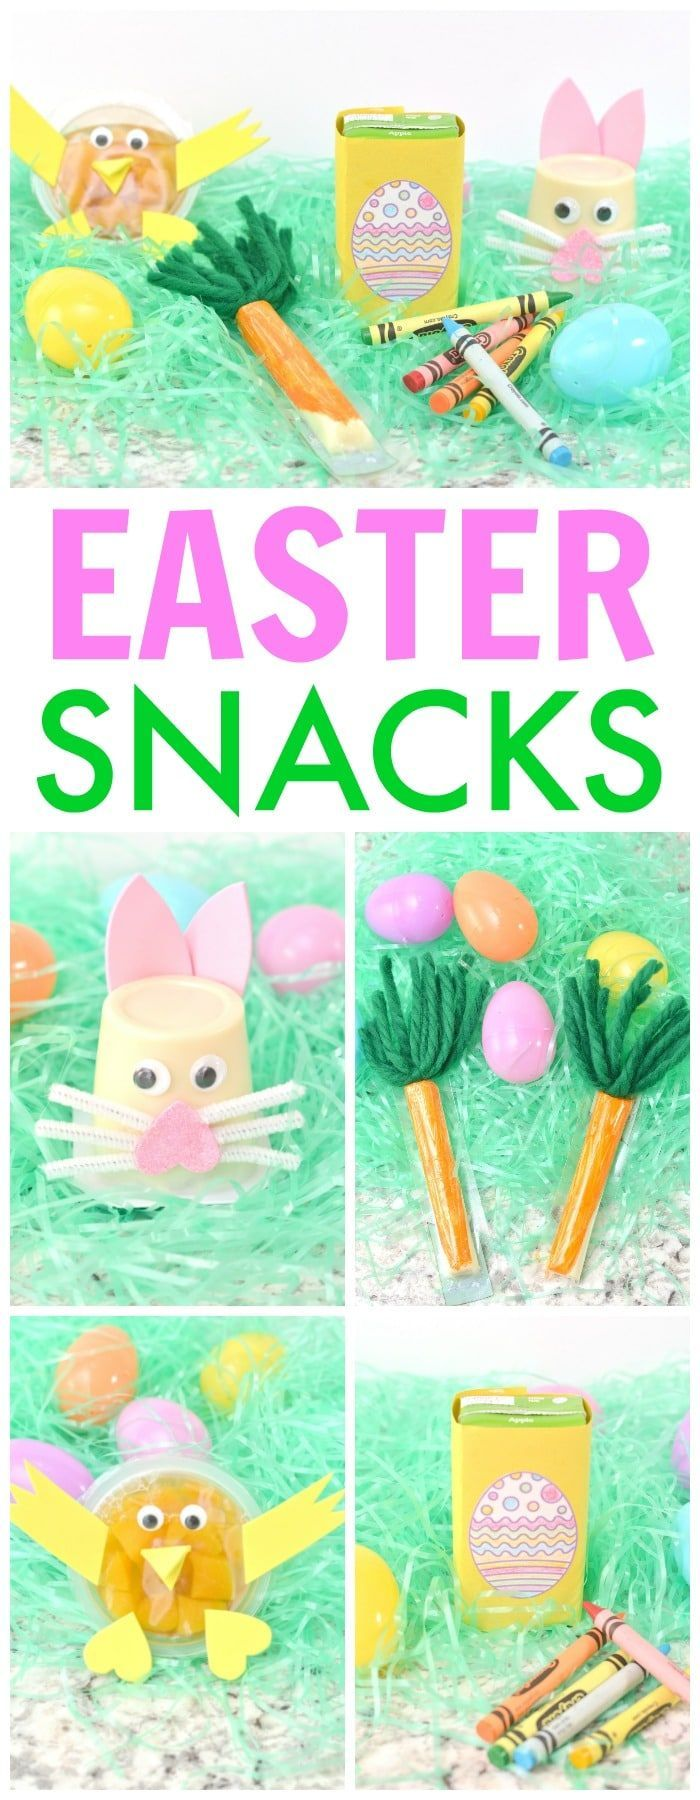 These Easter snack crafts are absolutely adorable and incredibly easy to make! #easter #funfoodforkids #easycrafts